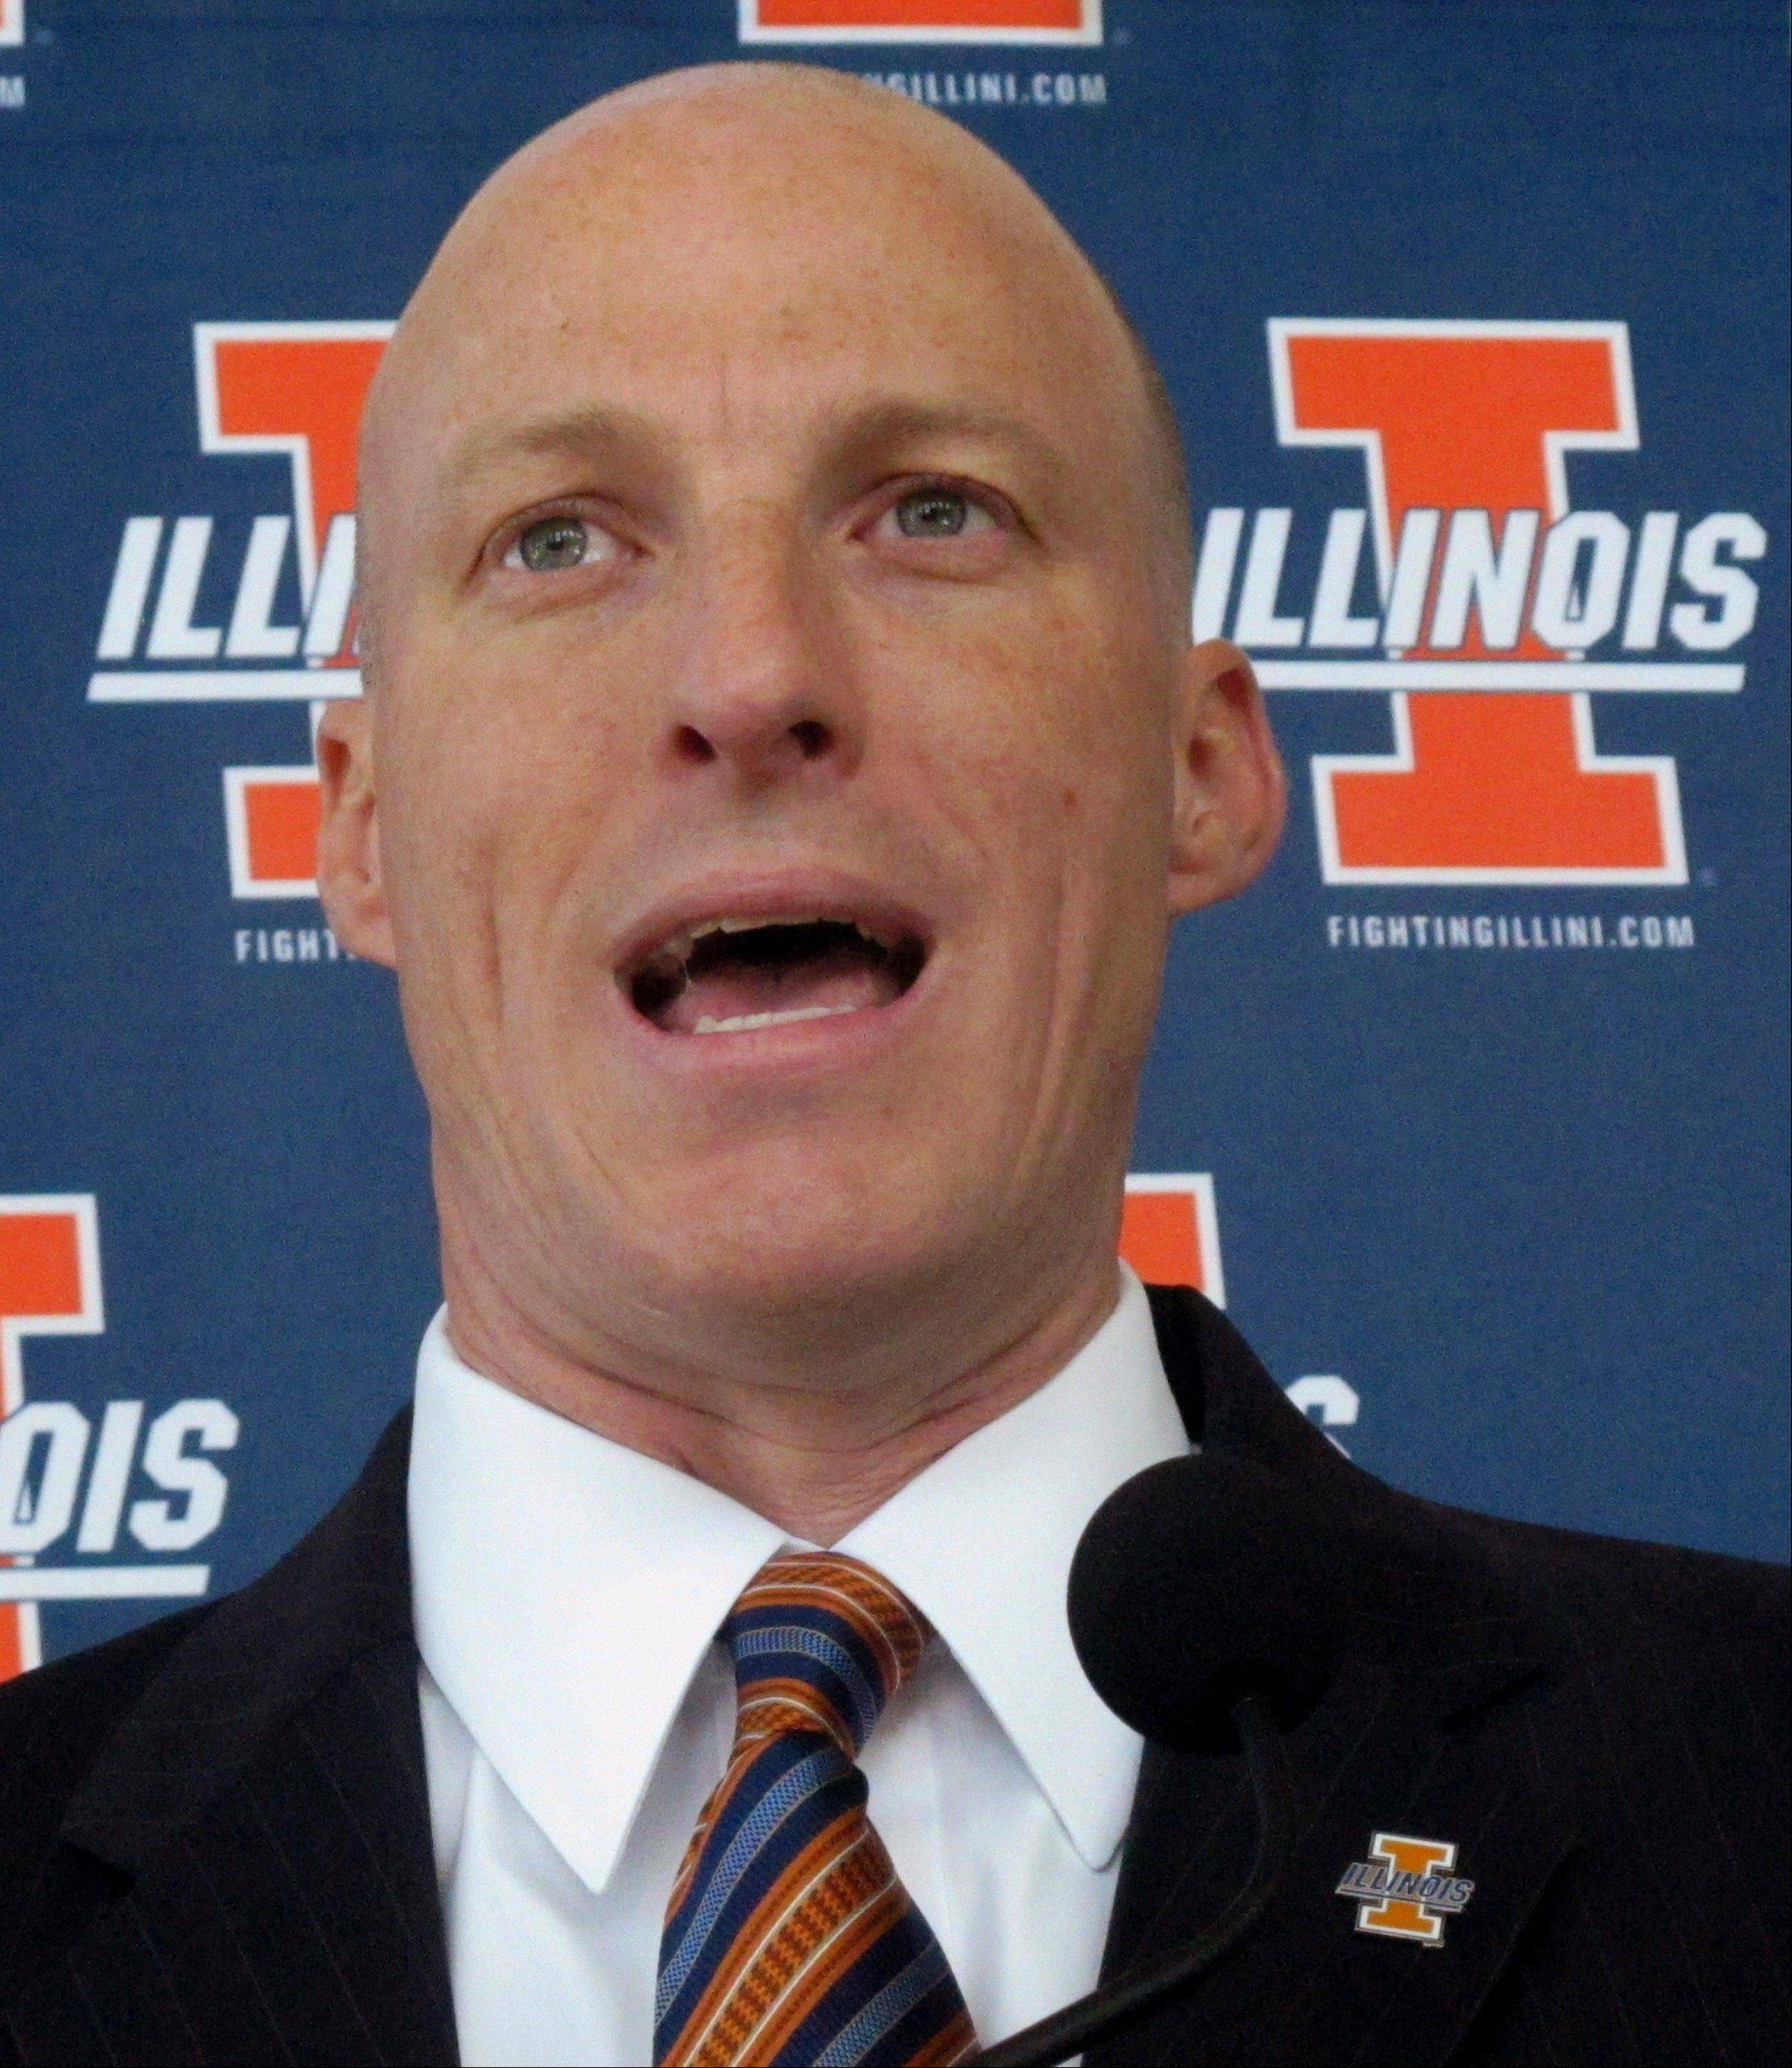 First-year Illinois basketball coach John Groce talks to reporters Wednesday during the team's media day in Champaign. Groce, who replaced Bruce Weber earlier this year, says he plans to play a fast-paced style but isn�t yet sure how much of that up-tempo game the team�s current roster can handle.